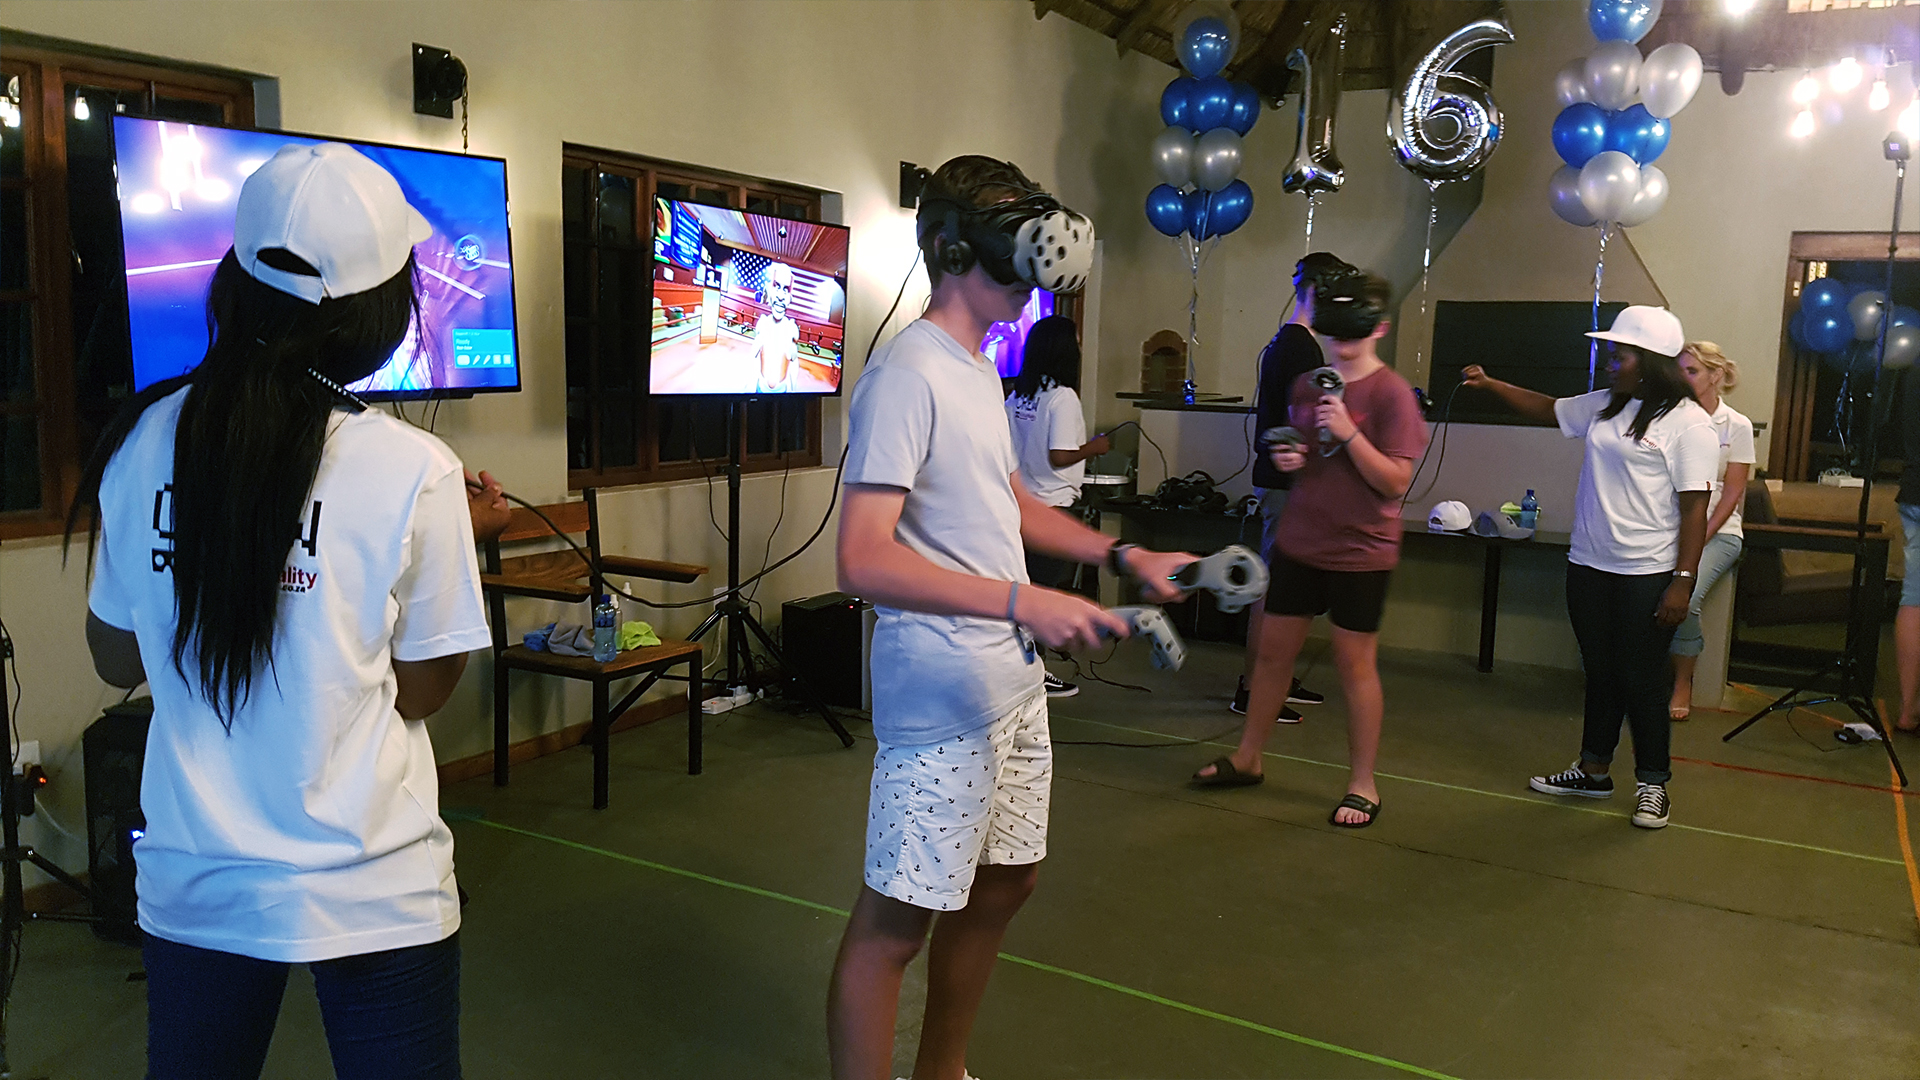 vr-birthday-party-johannesburg